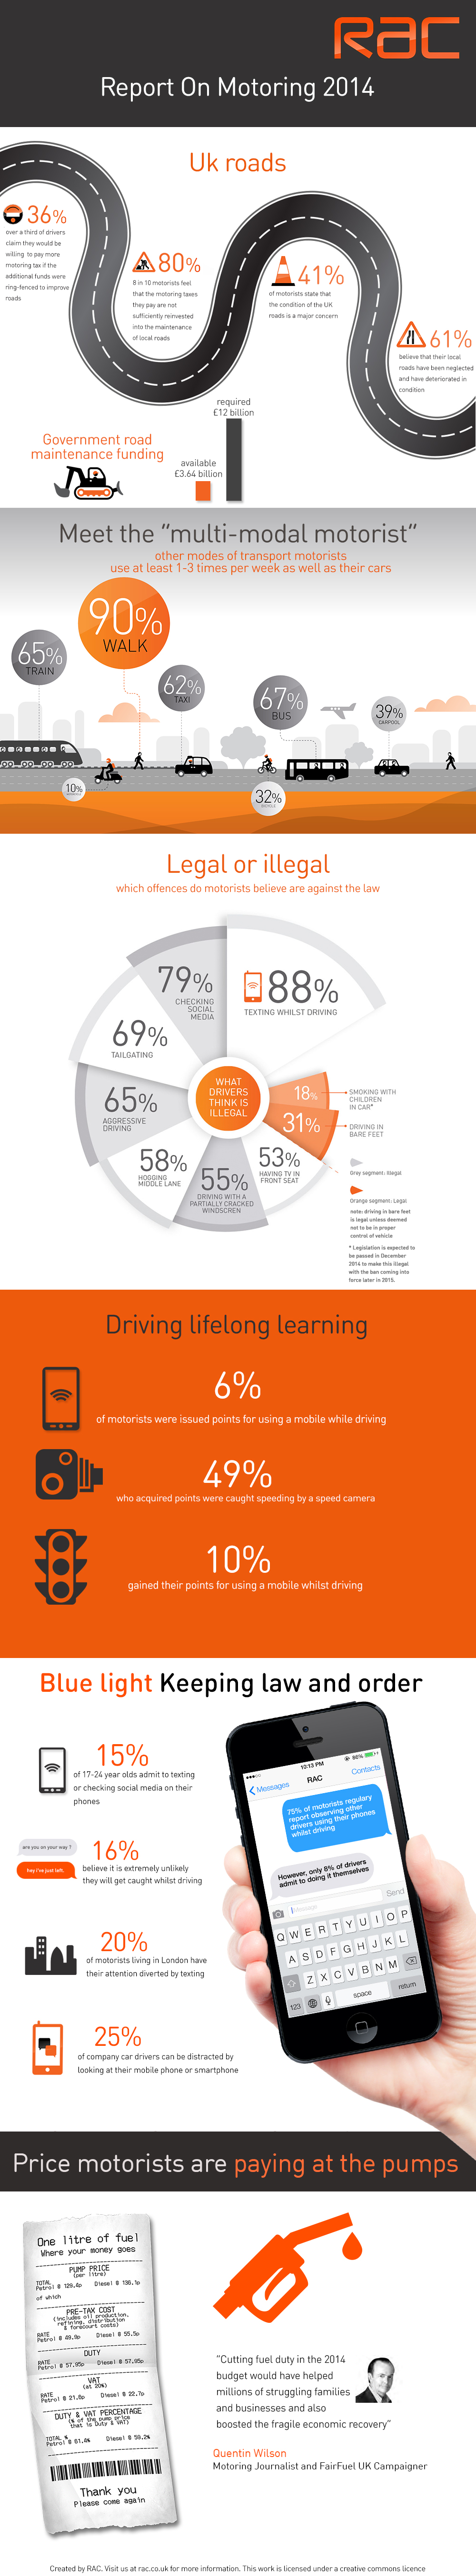 RAC infographic motoring report